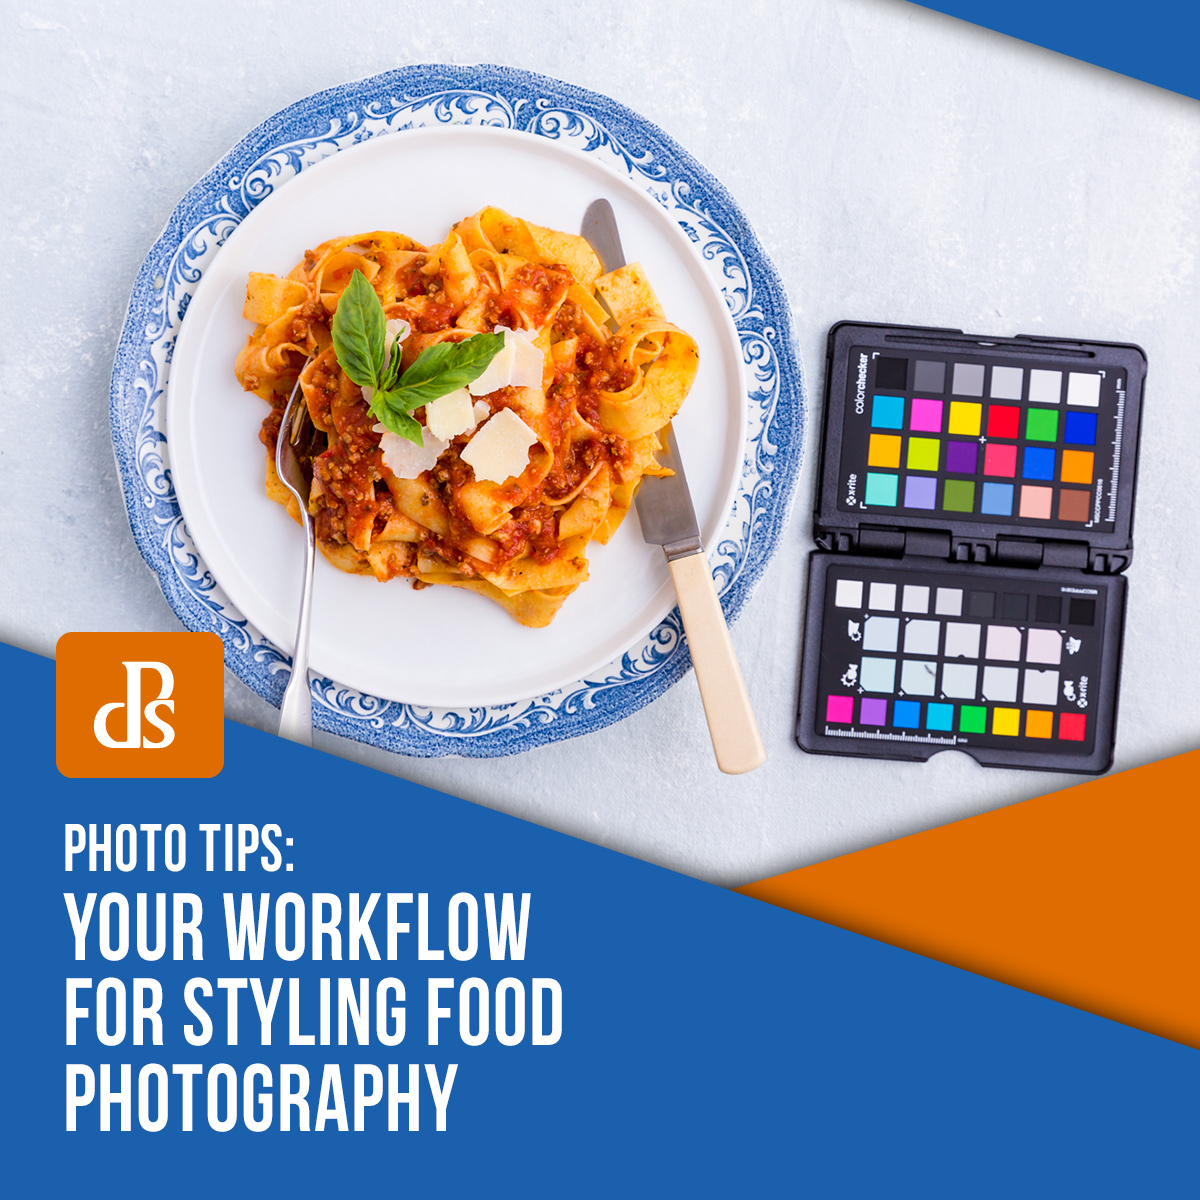 Your Workflow for Styling Food Photography